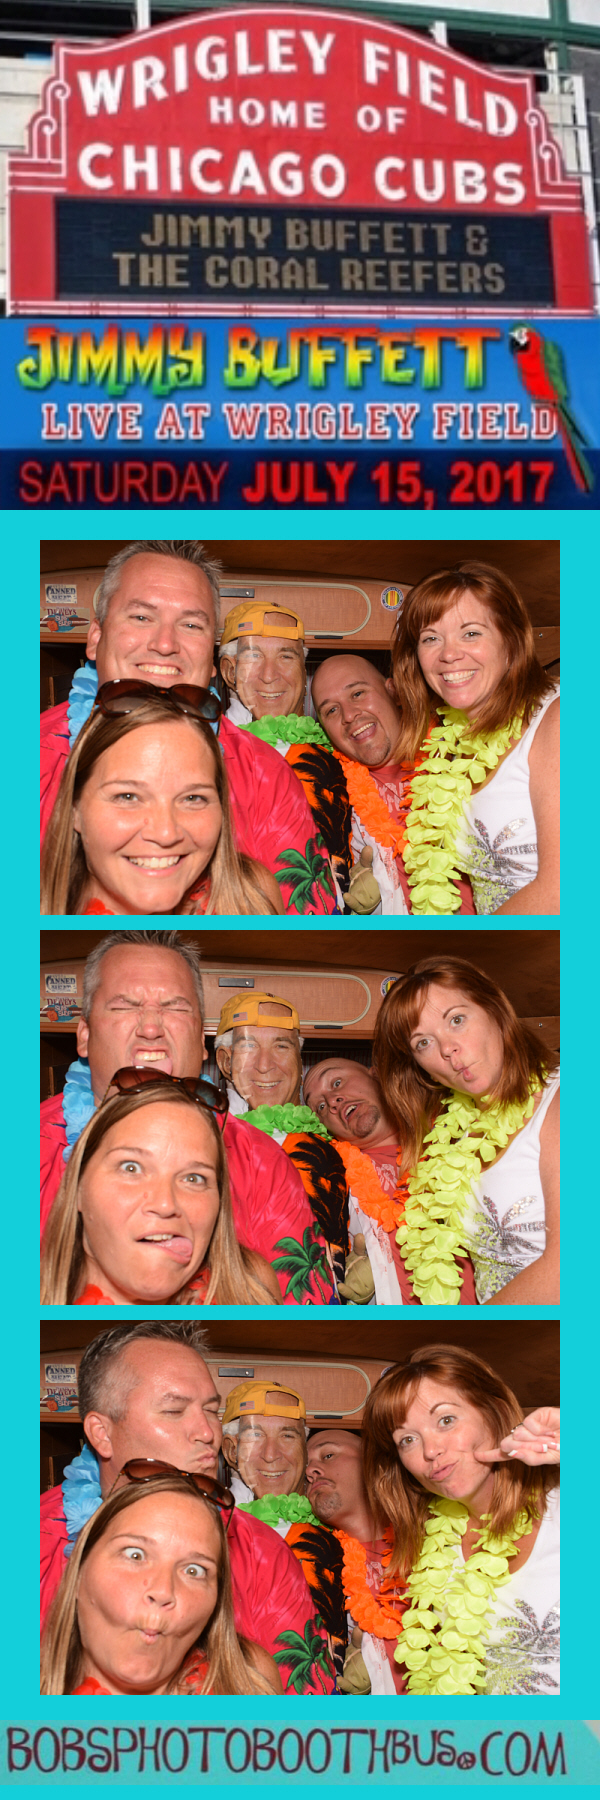 Jimmy Buffett final photo strip graphic_56.jpg